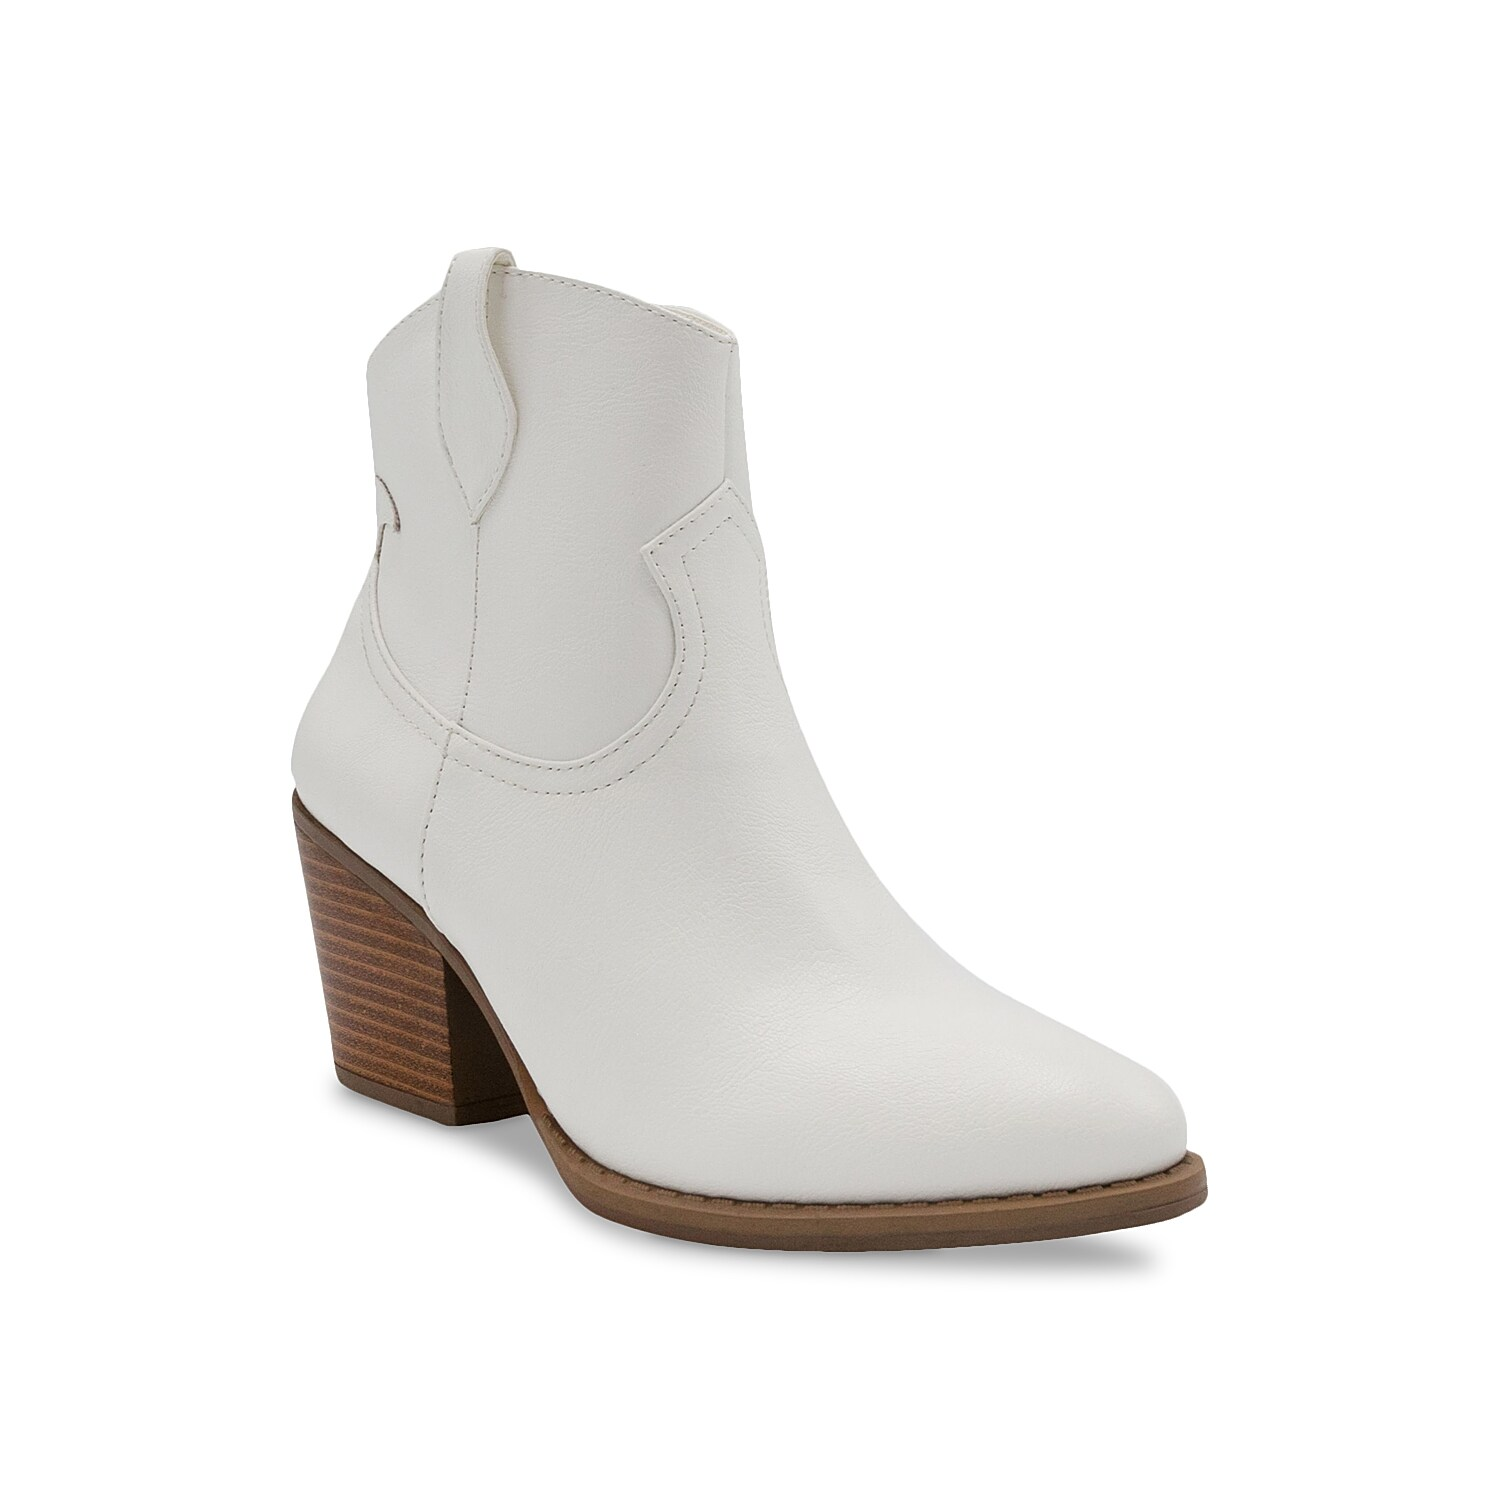 Western style gets a modern update with the Tarah bootie from Sugar. This pair features a trendy block heel, sleek almond toe, and classic pull loops to keep any outfit looking fresh. Click here for Boot Measuring Guide.